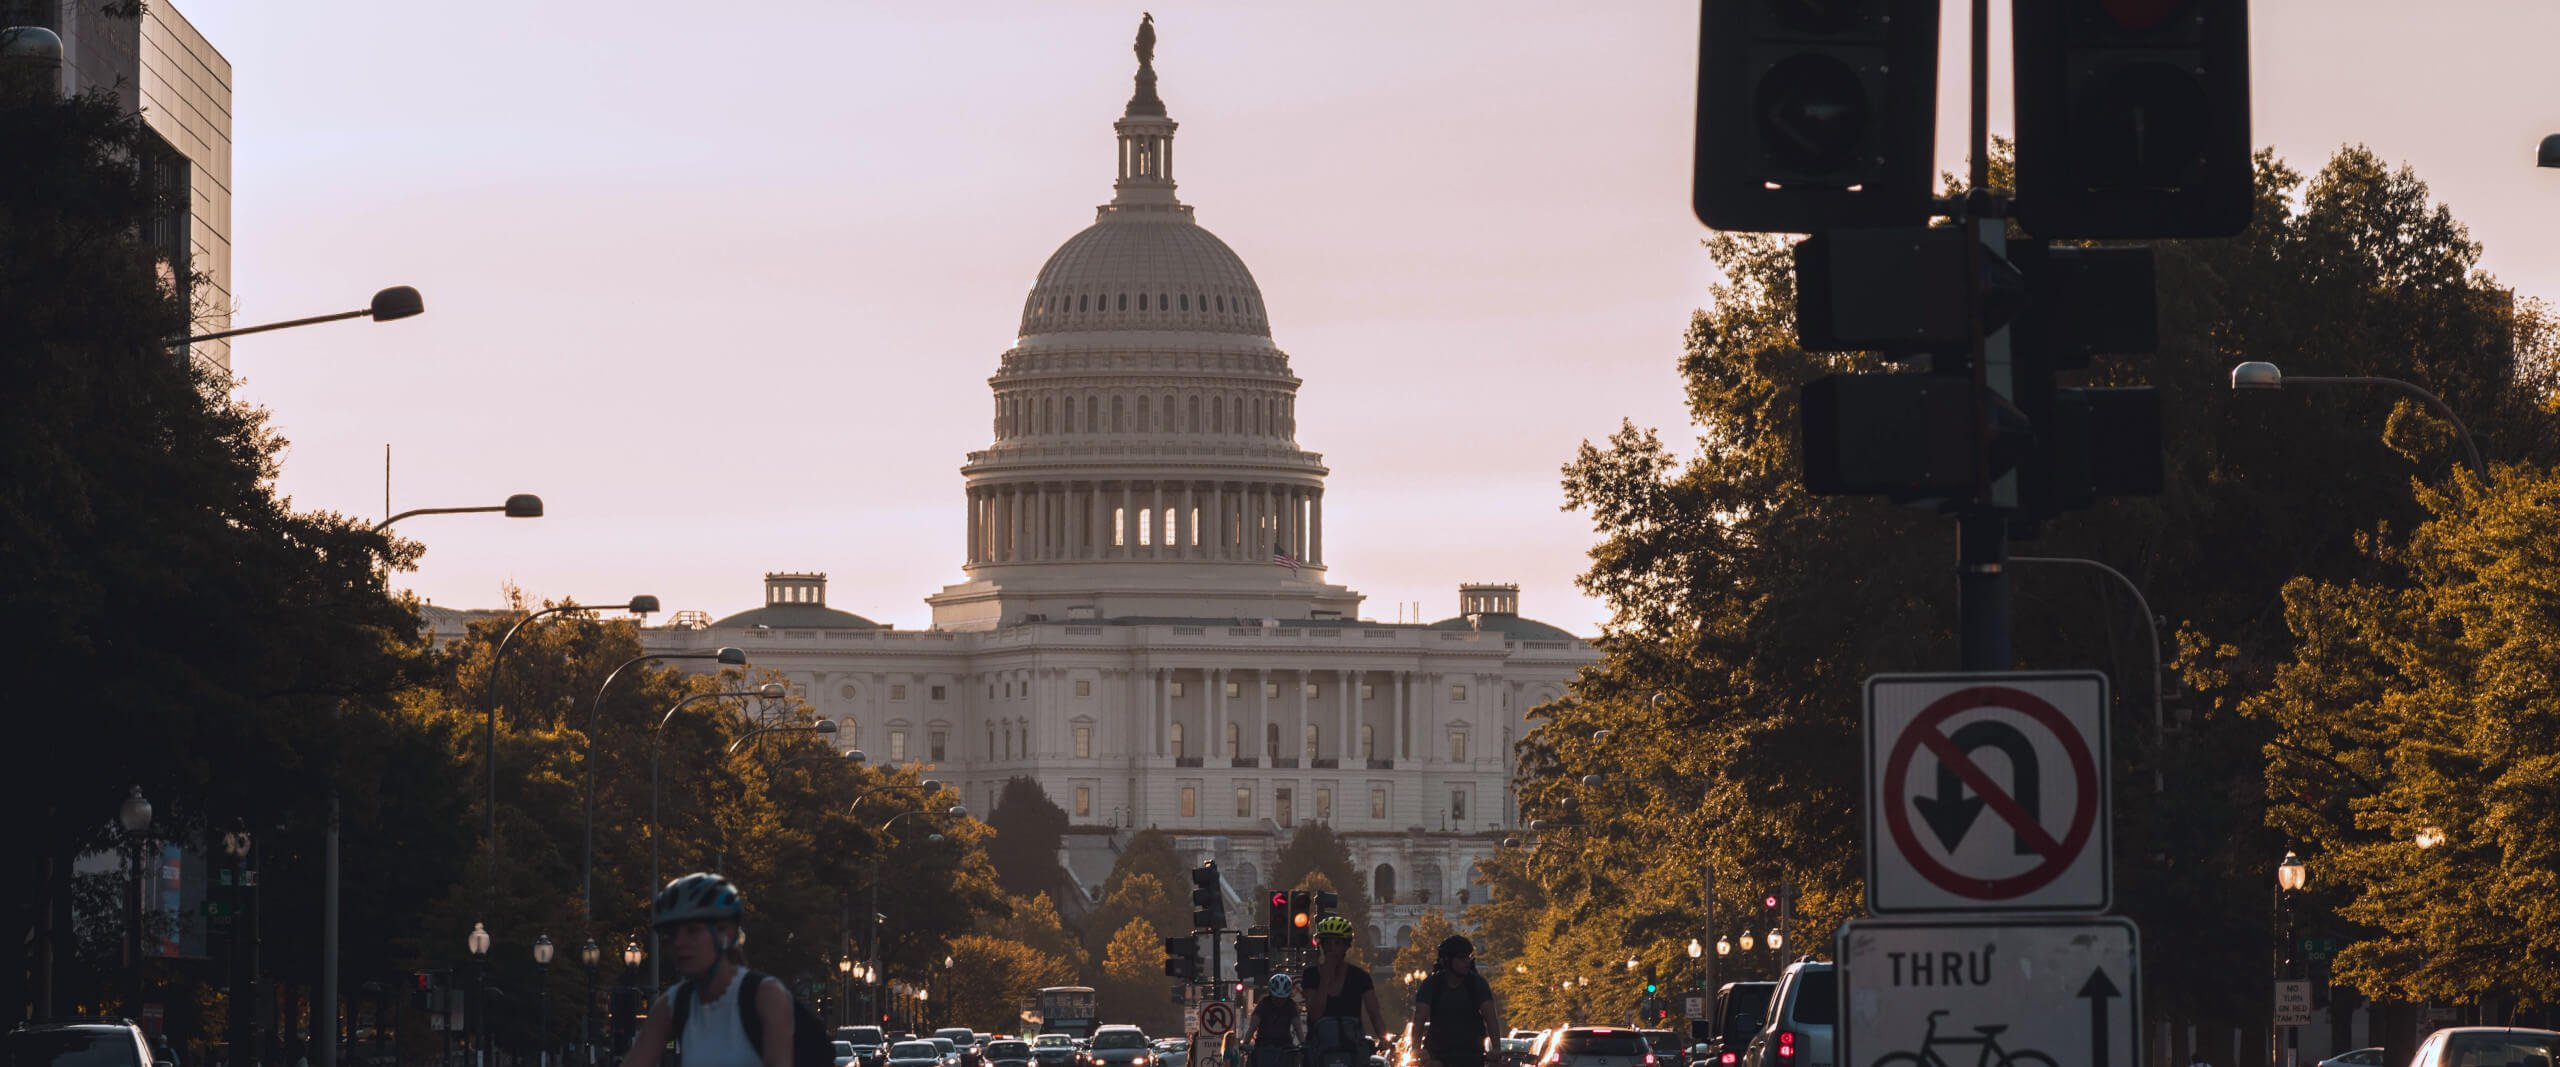 Photo of the U.S. Capitol building with a streetlight and